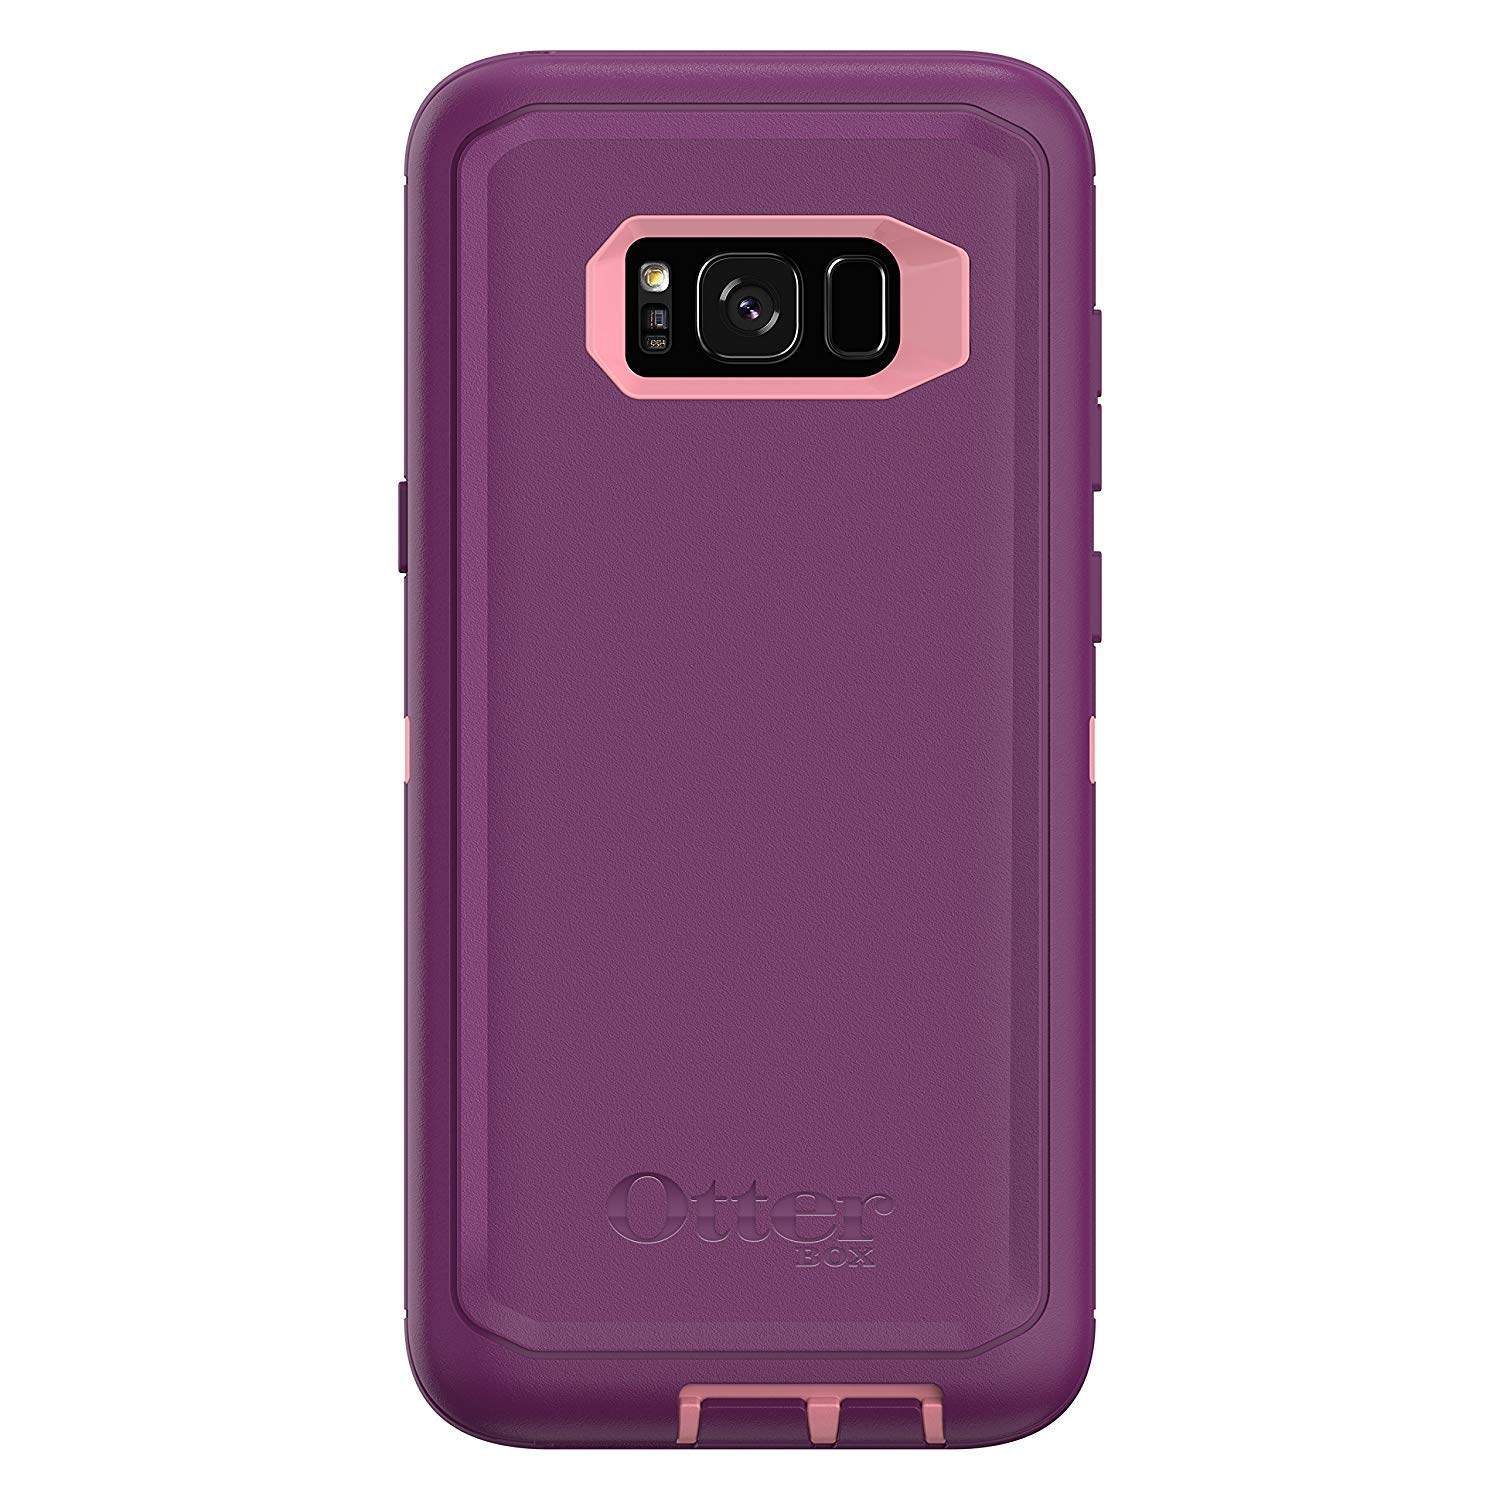 newest f8d7d 430fe OtterBox Defender Series Case & Holster for Galaxy S8 Plus (ONLY) - Vinyasa  (Renewed)